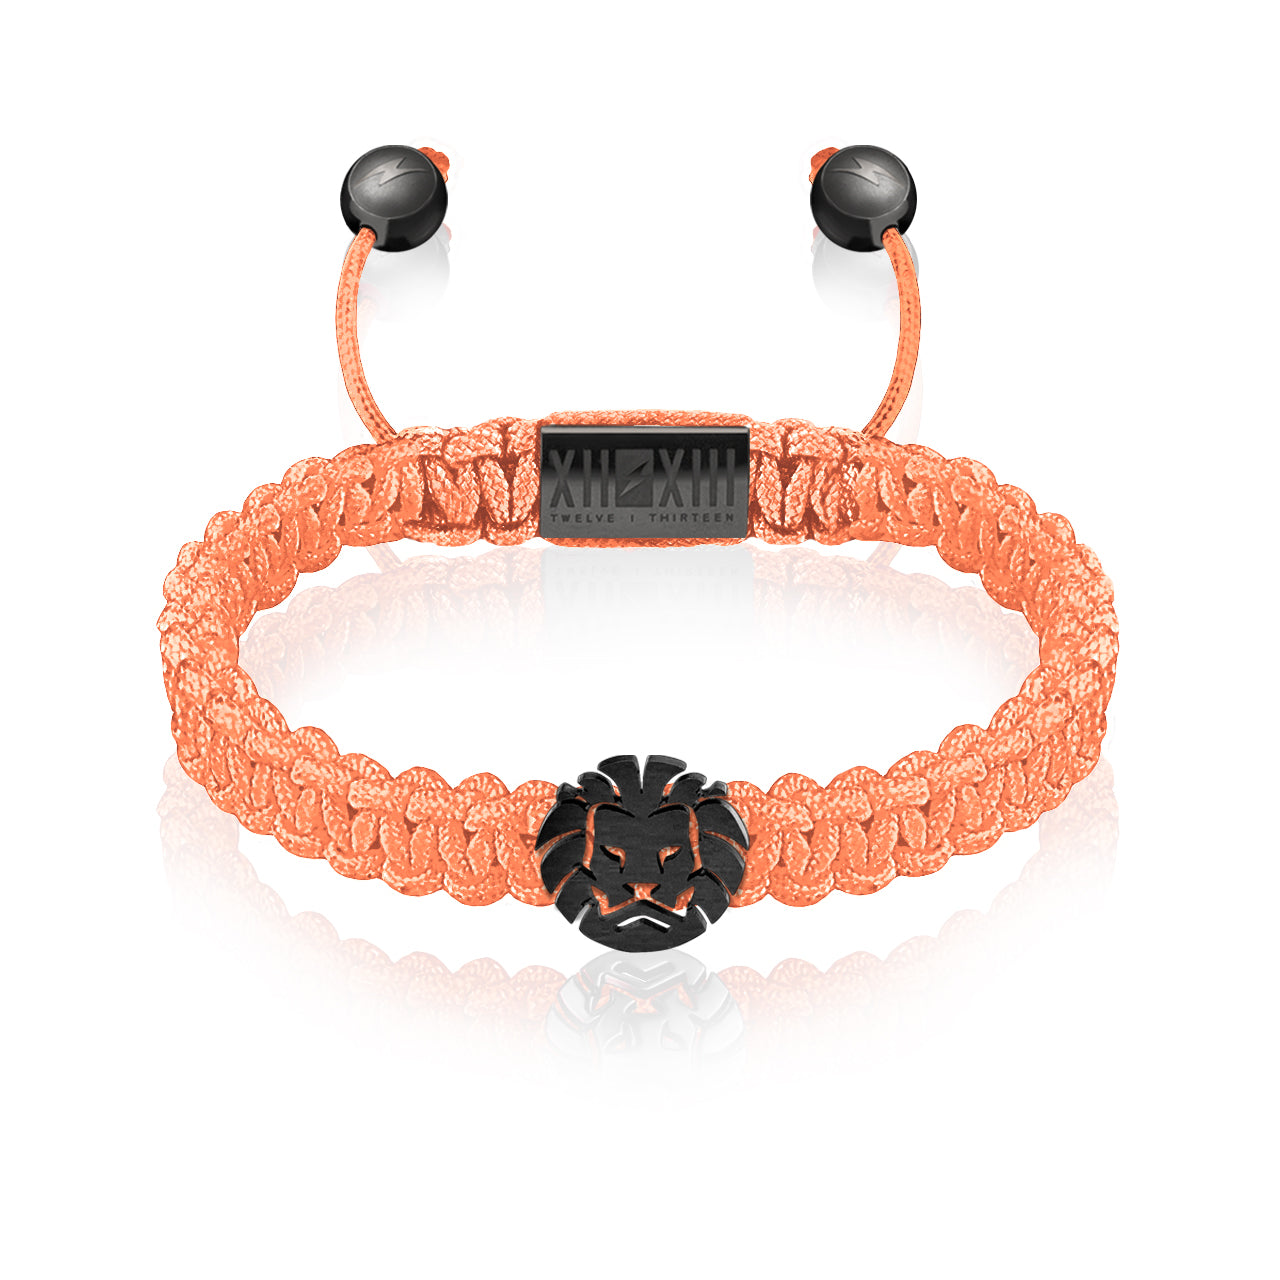 WATCHANISH by Twelve Thirteen Jewelry macramé braided bracelet - Rosa/Matte Black